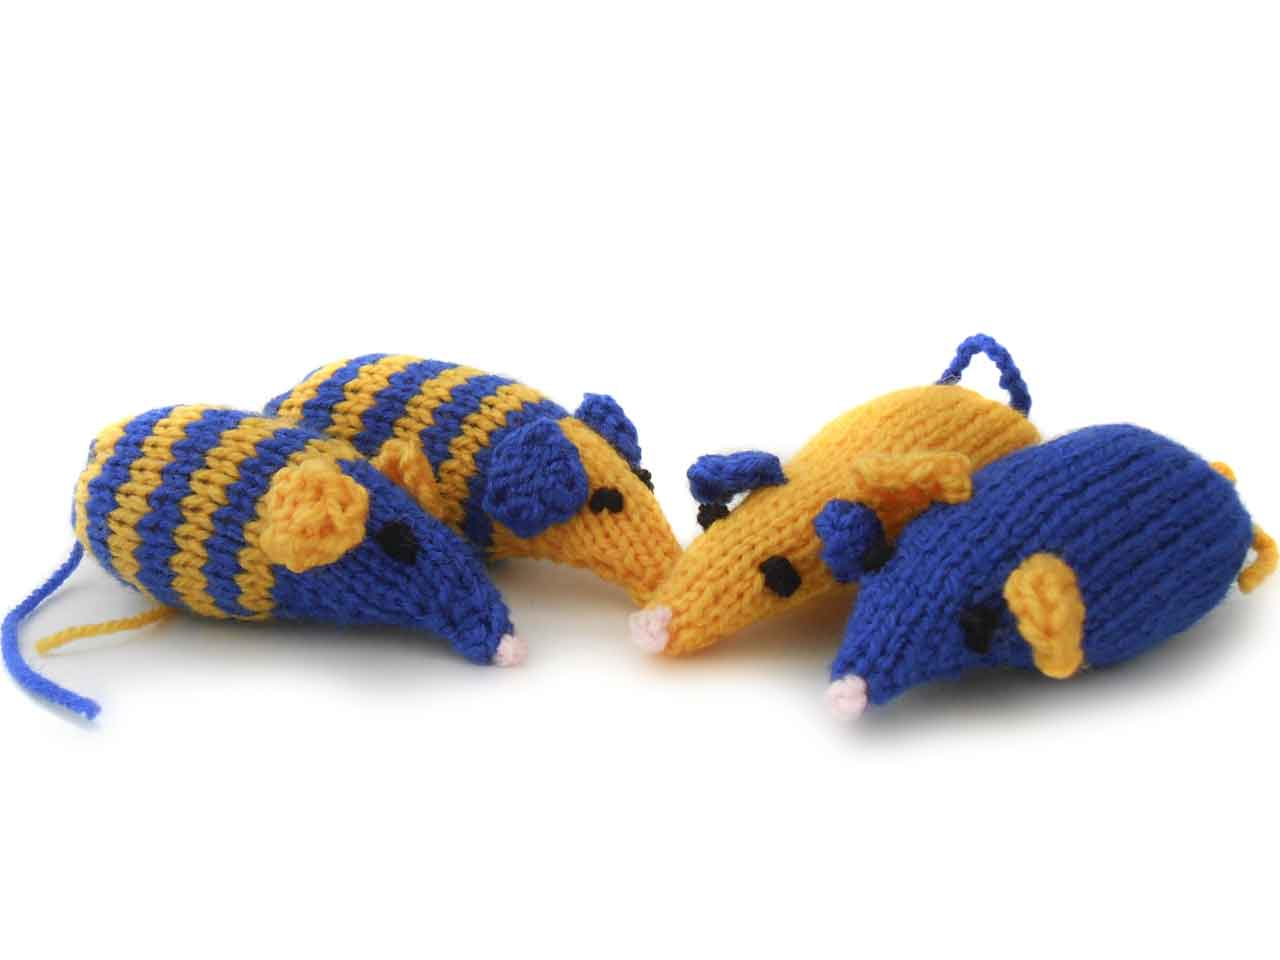 Drawn rodent little mouse Knitted catnip mice Saga mice